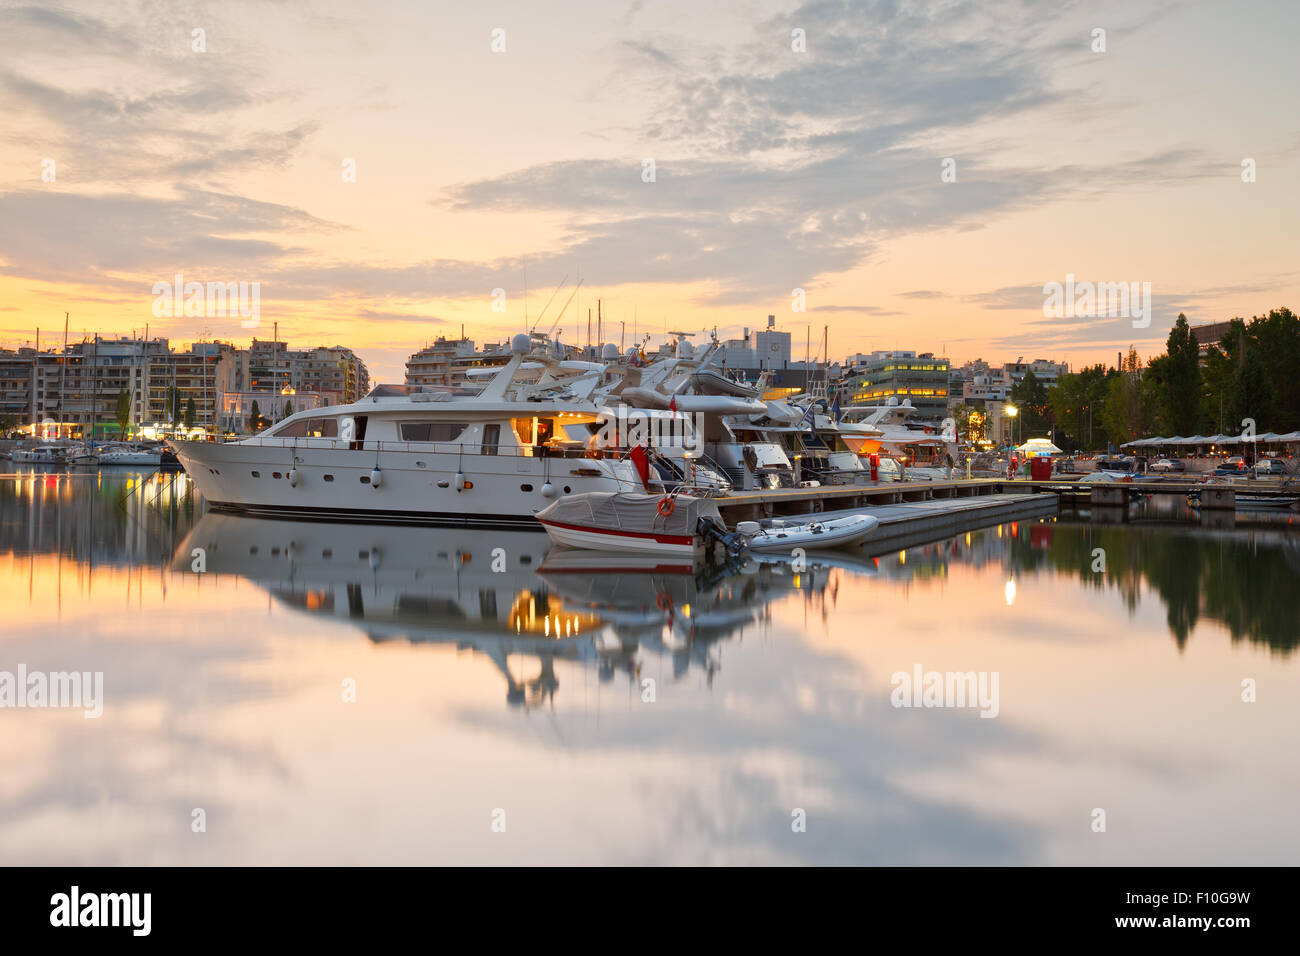 Yachts in Zea Marina in Athens, Greece Stock Photo